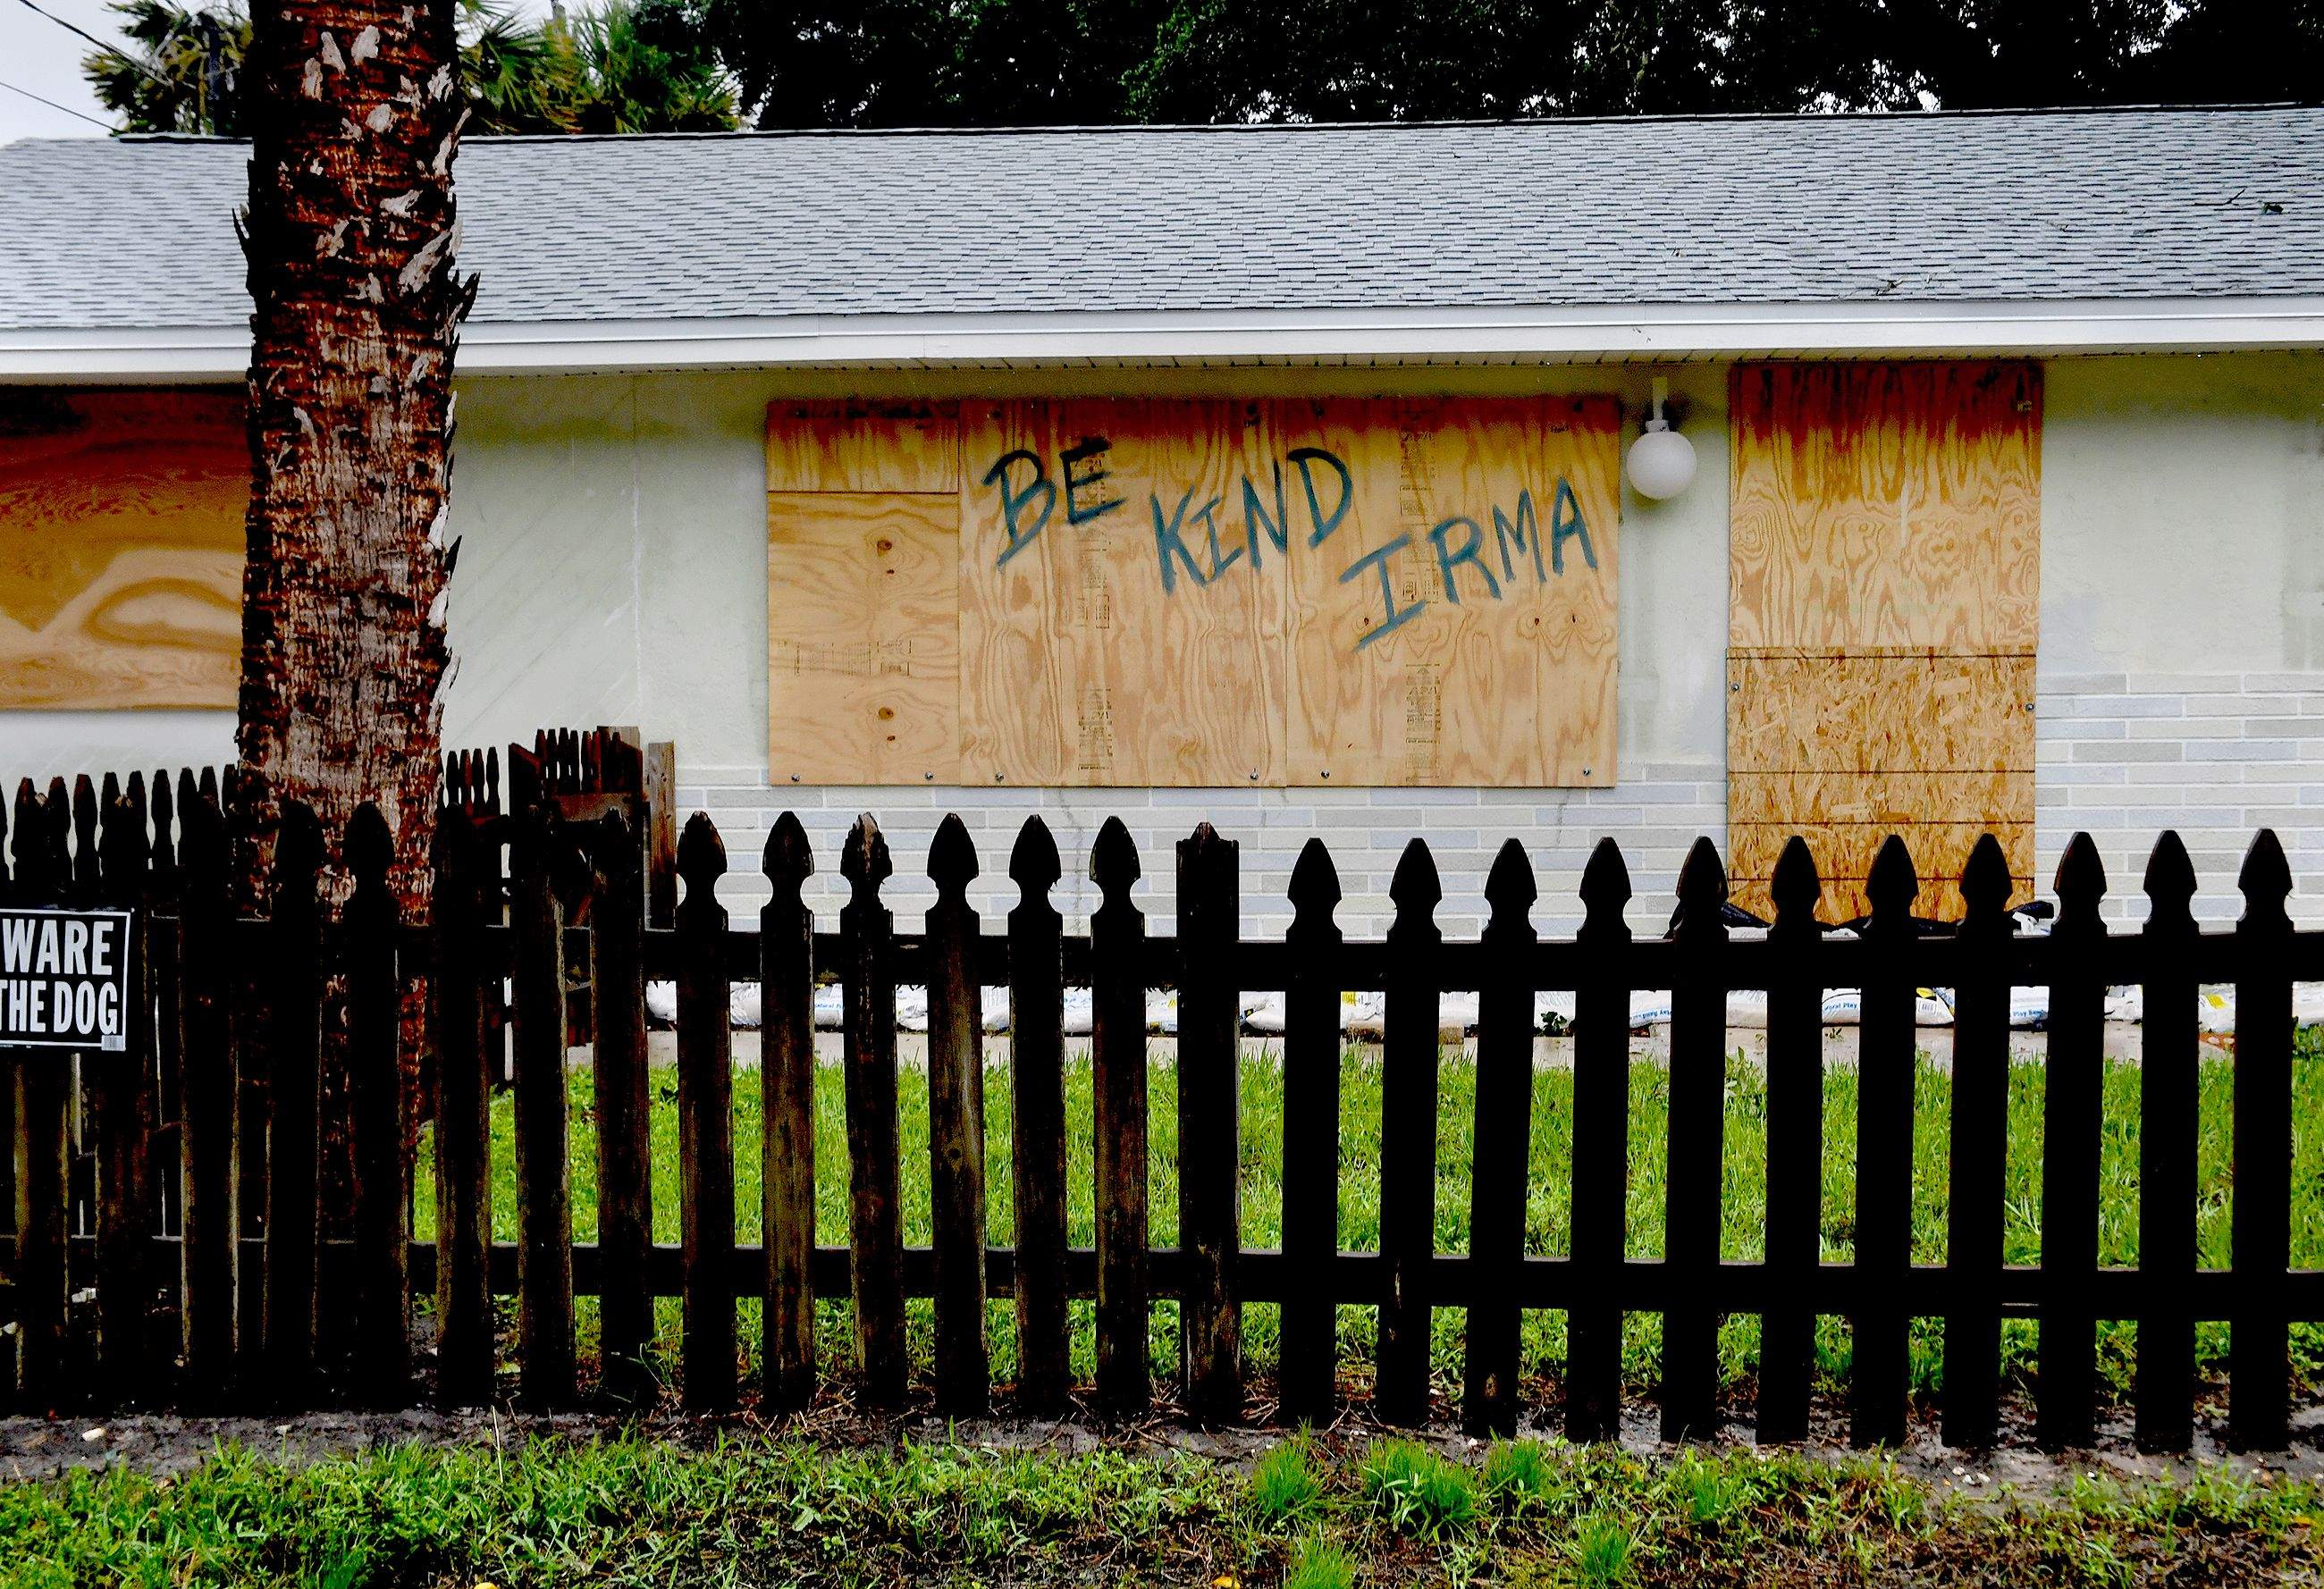 A homeowner in Bonita Springs, Florida, makes a plea to Hurricane Irma. MUST CREDIT: Washington Post photo by Michael S. Williamson